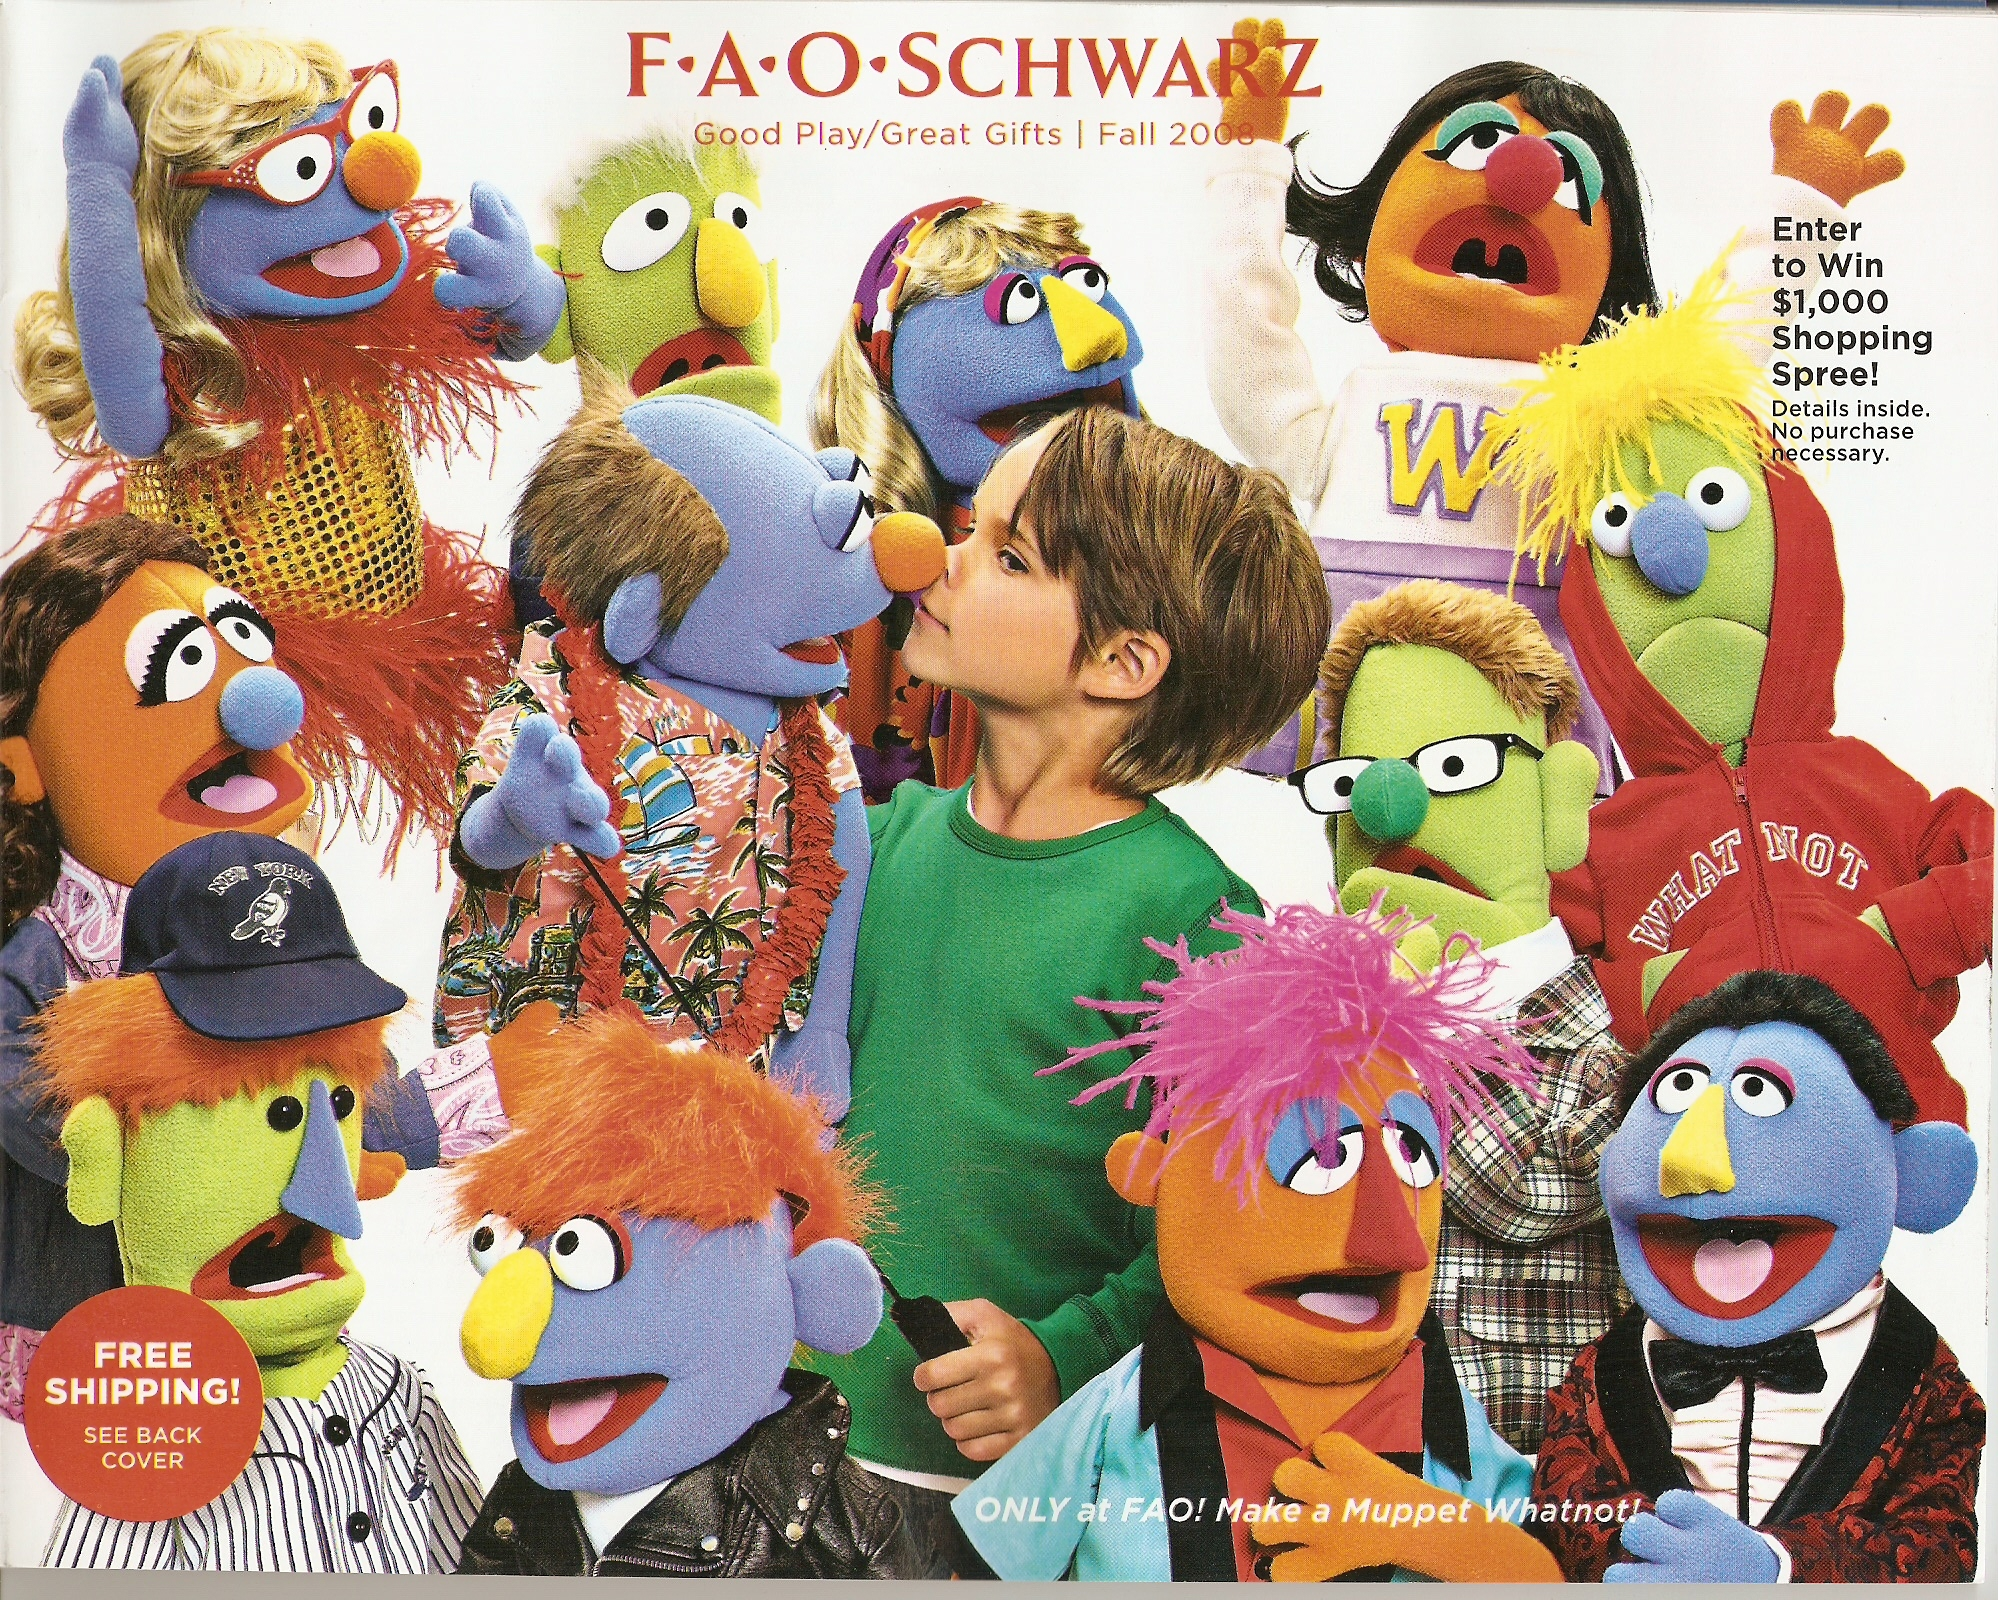 FAO Schwarz Catalog for Fall 2008